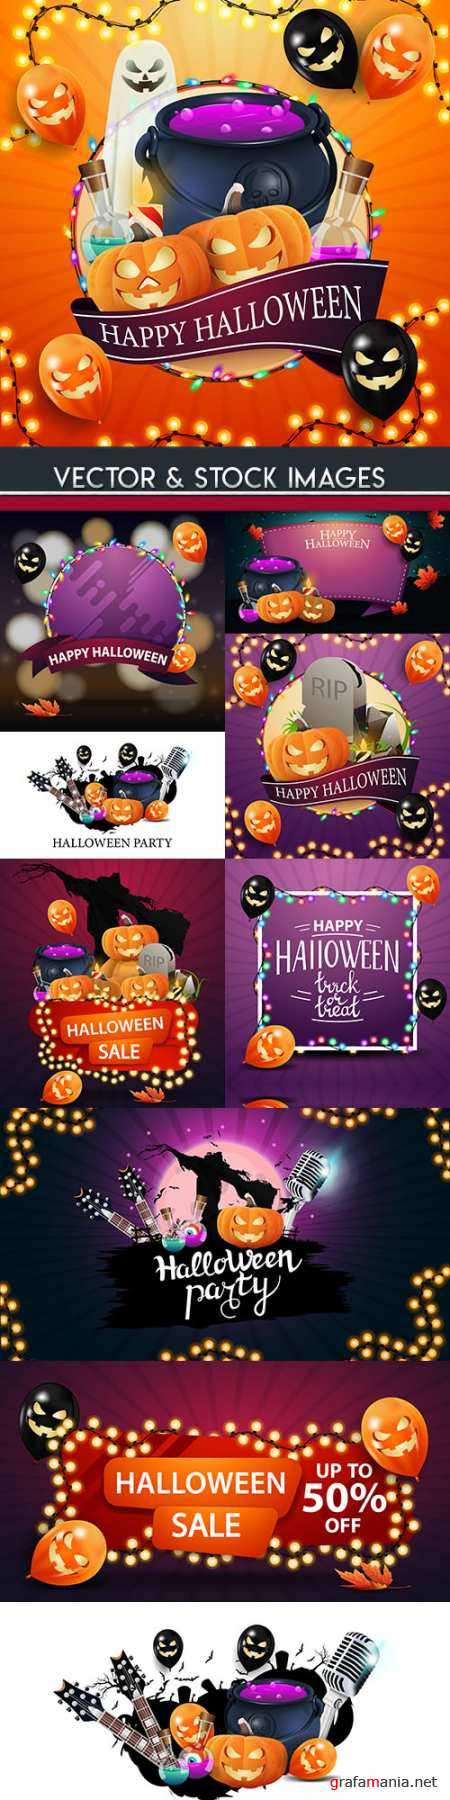 Happy Halloween holiday illustration collection 30